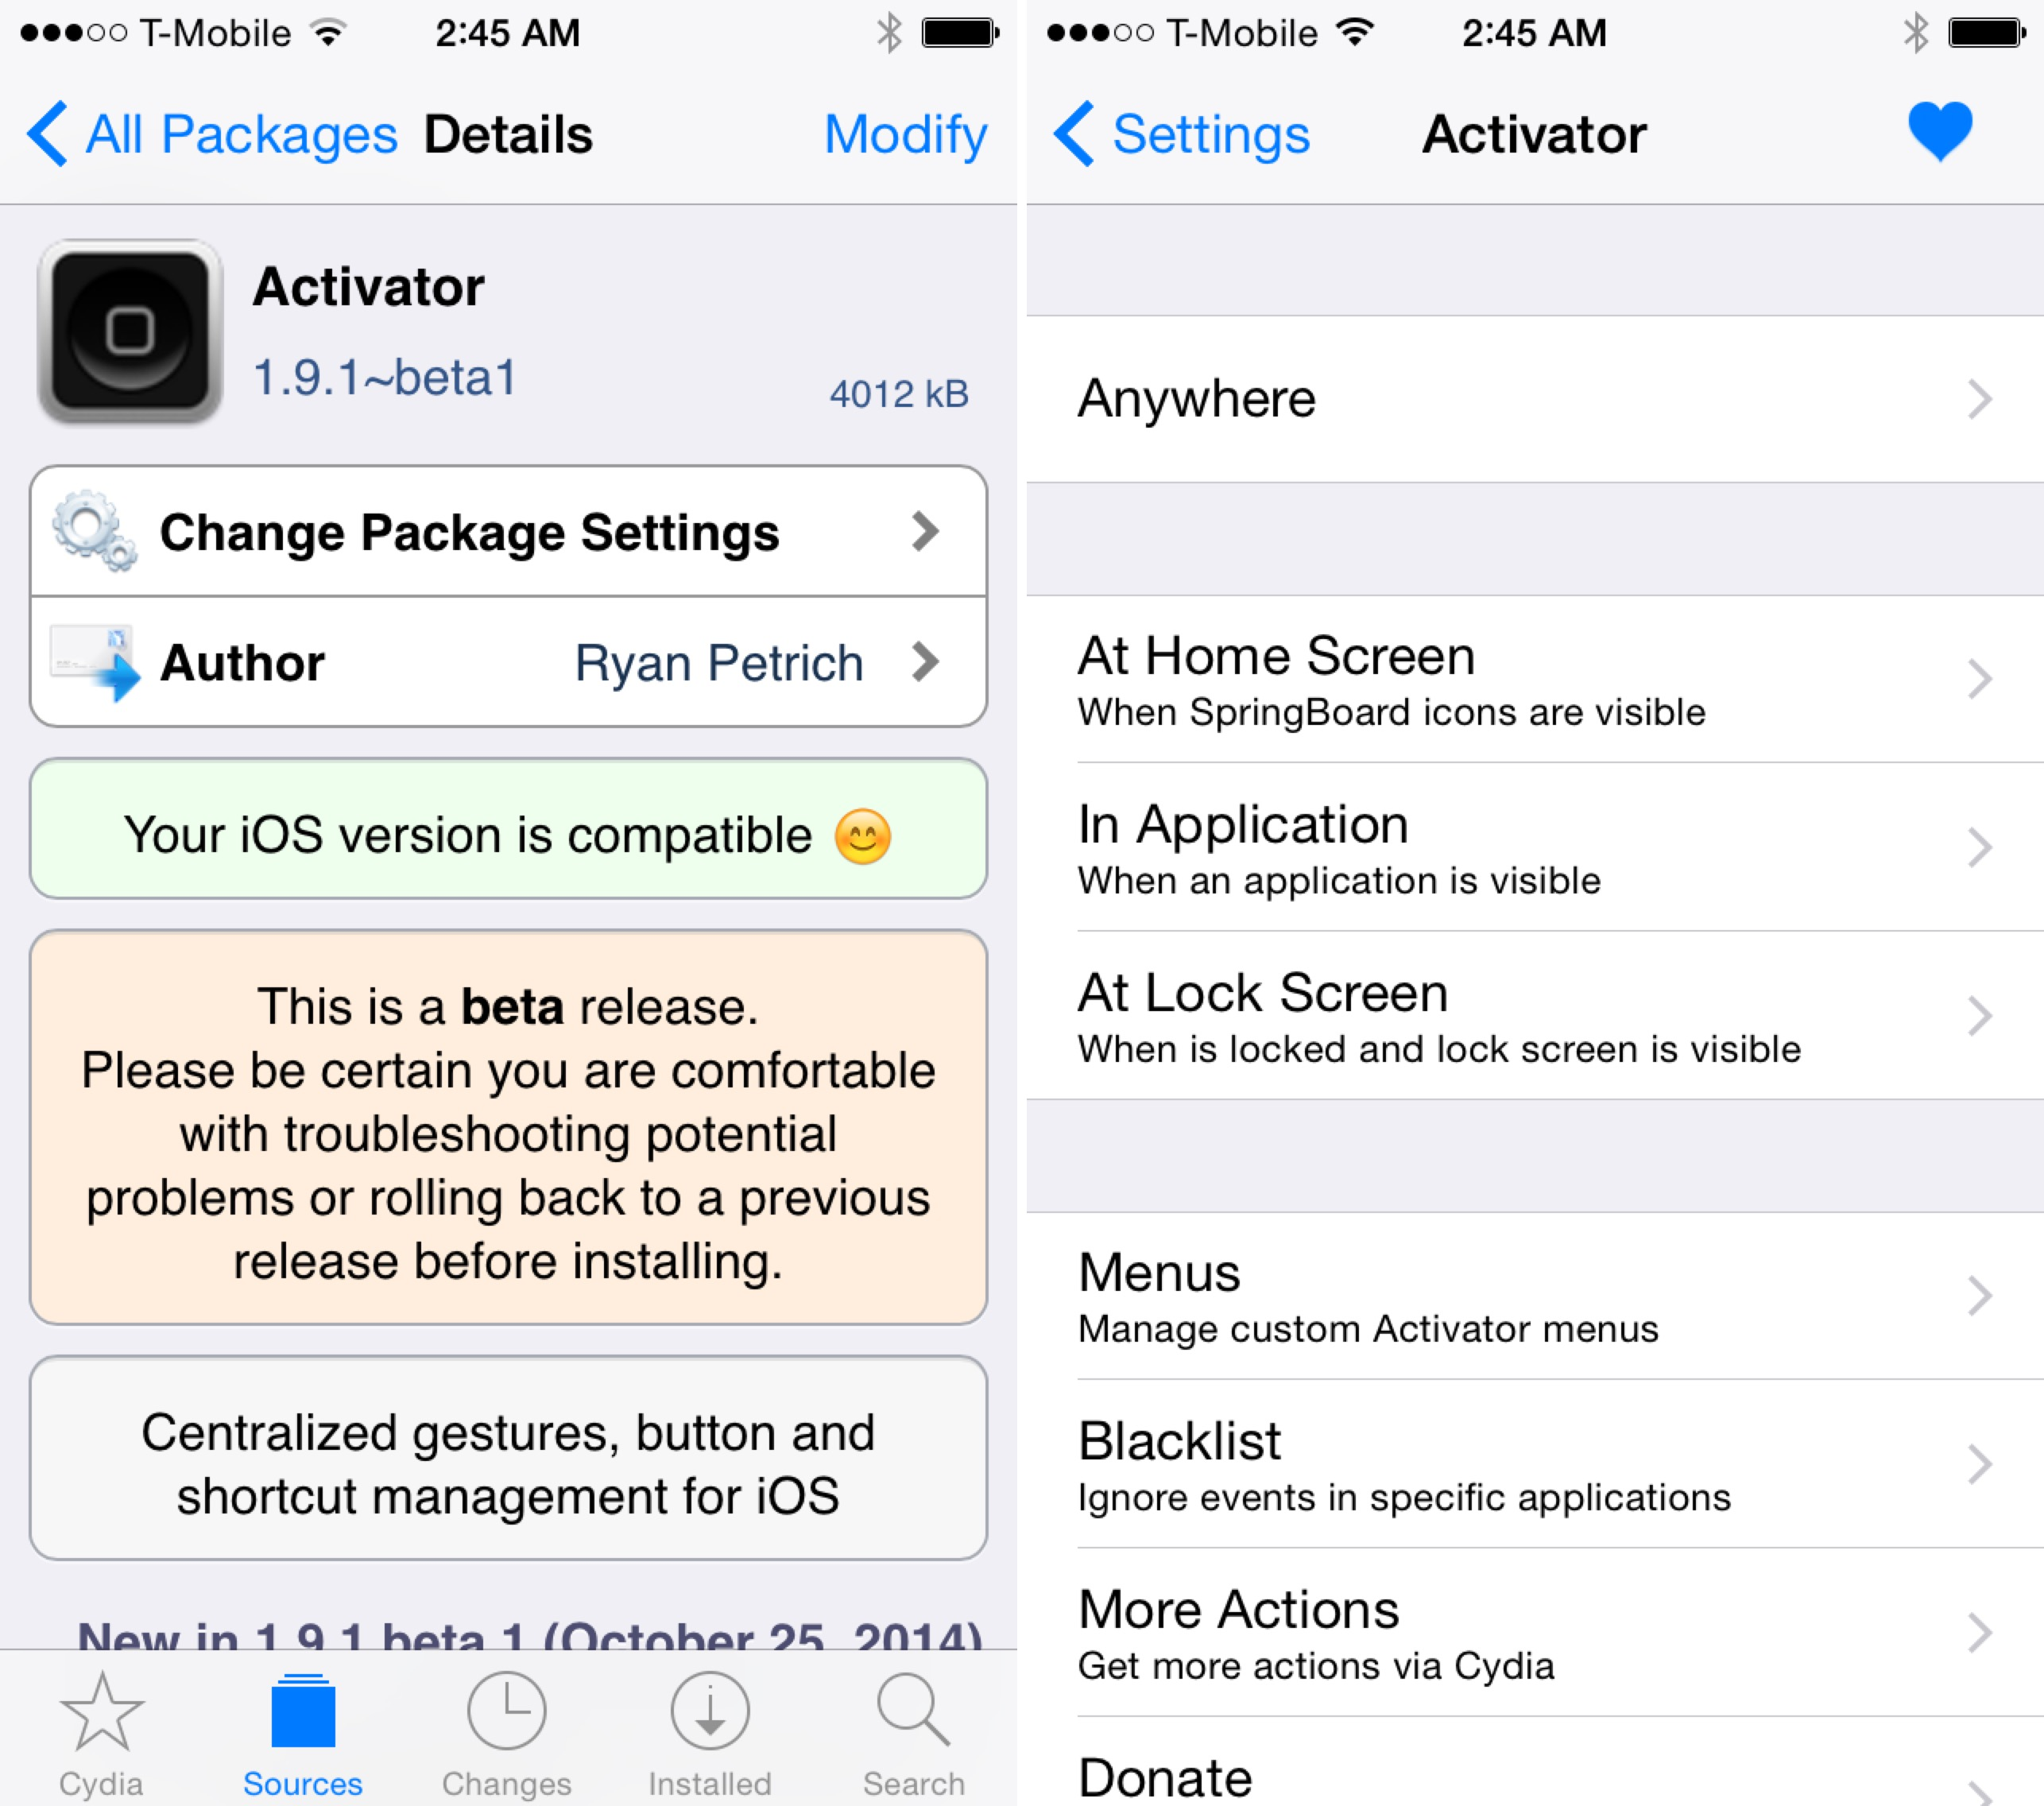 Activator iOS 8 beta screenshot